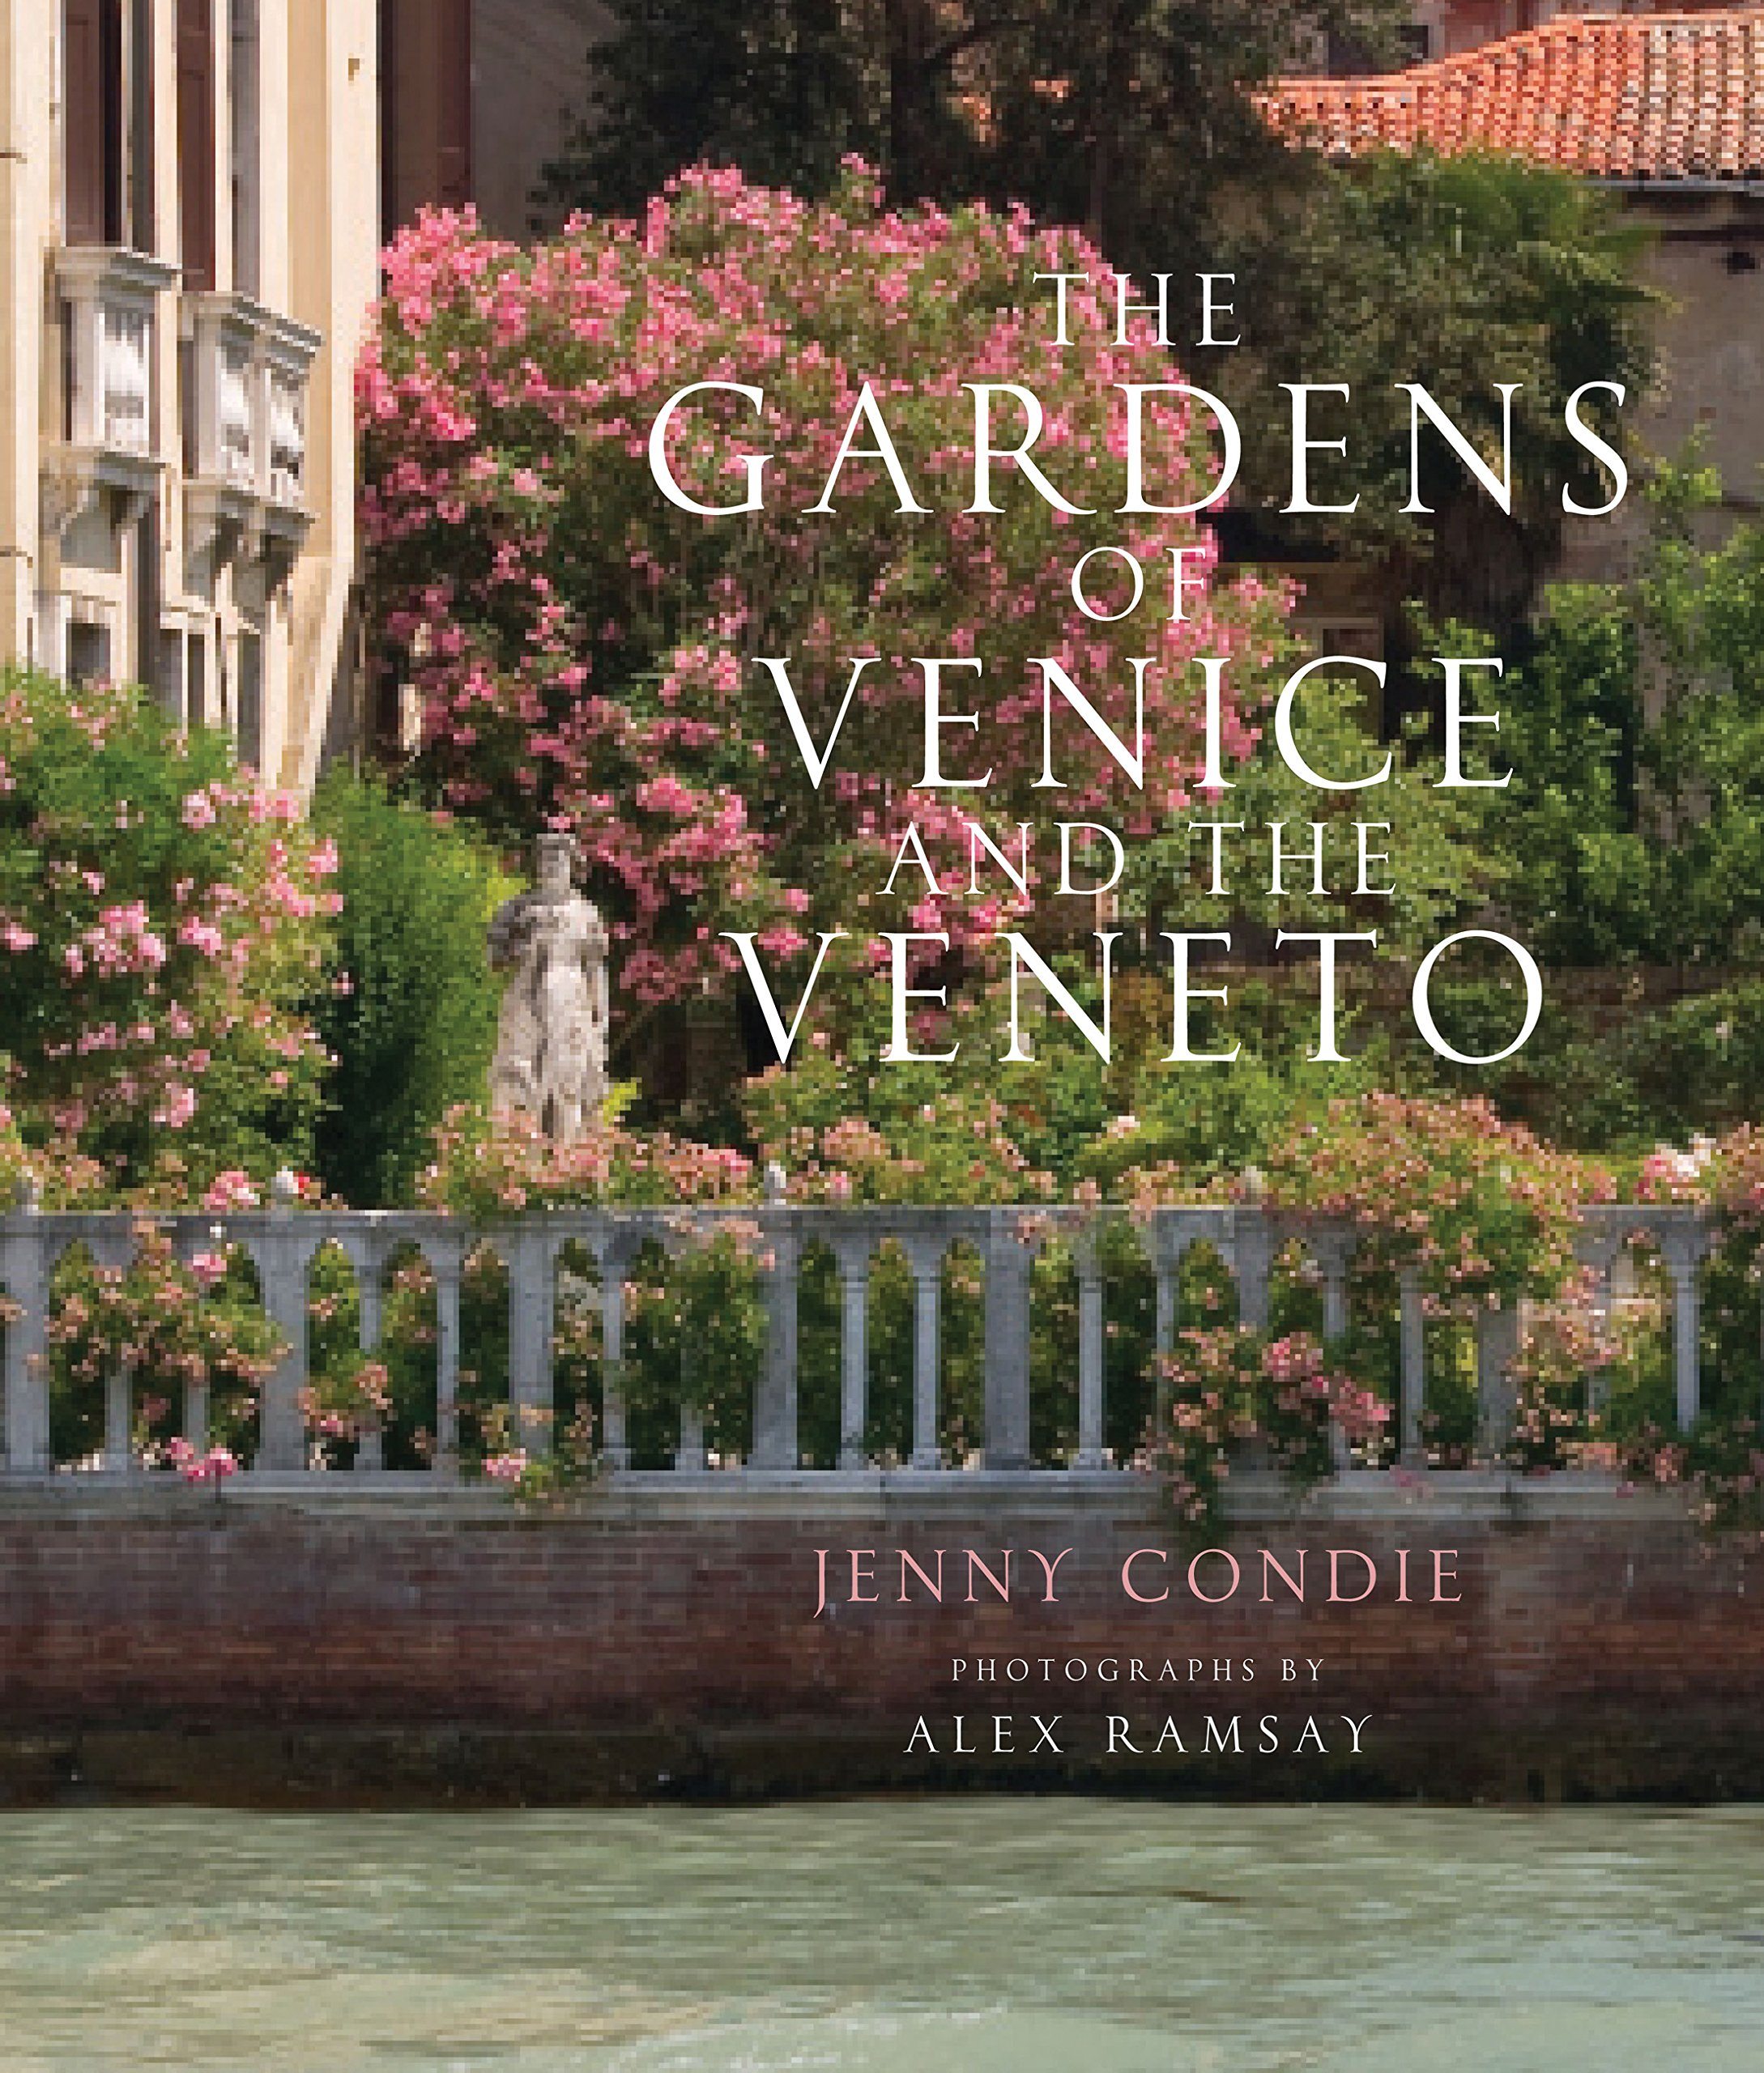 Image OfGardens Of Venice And The Veneto